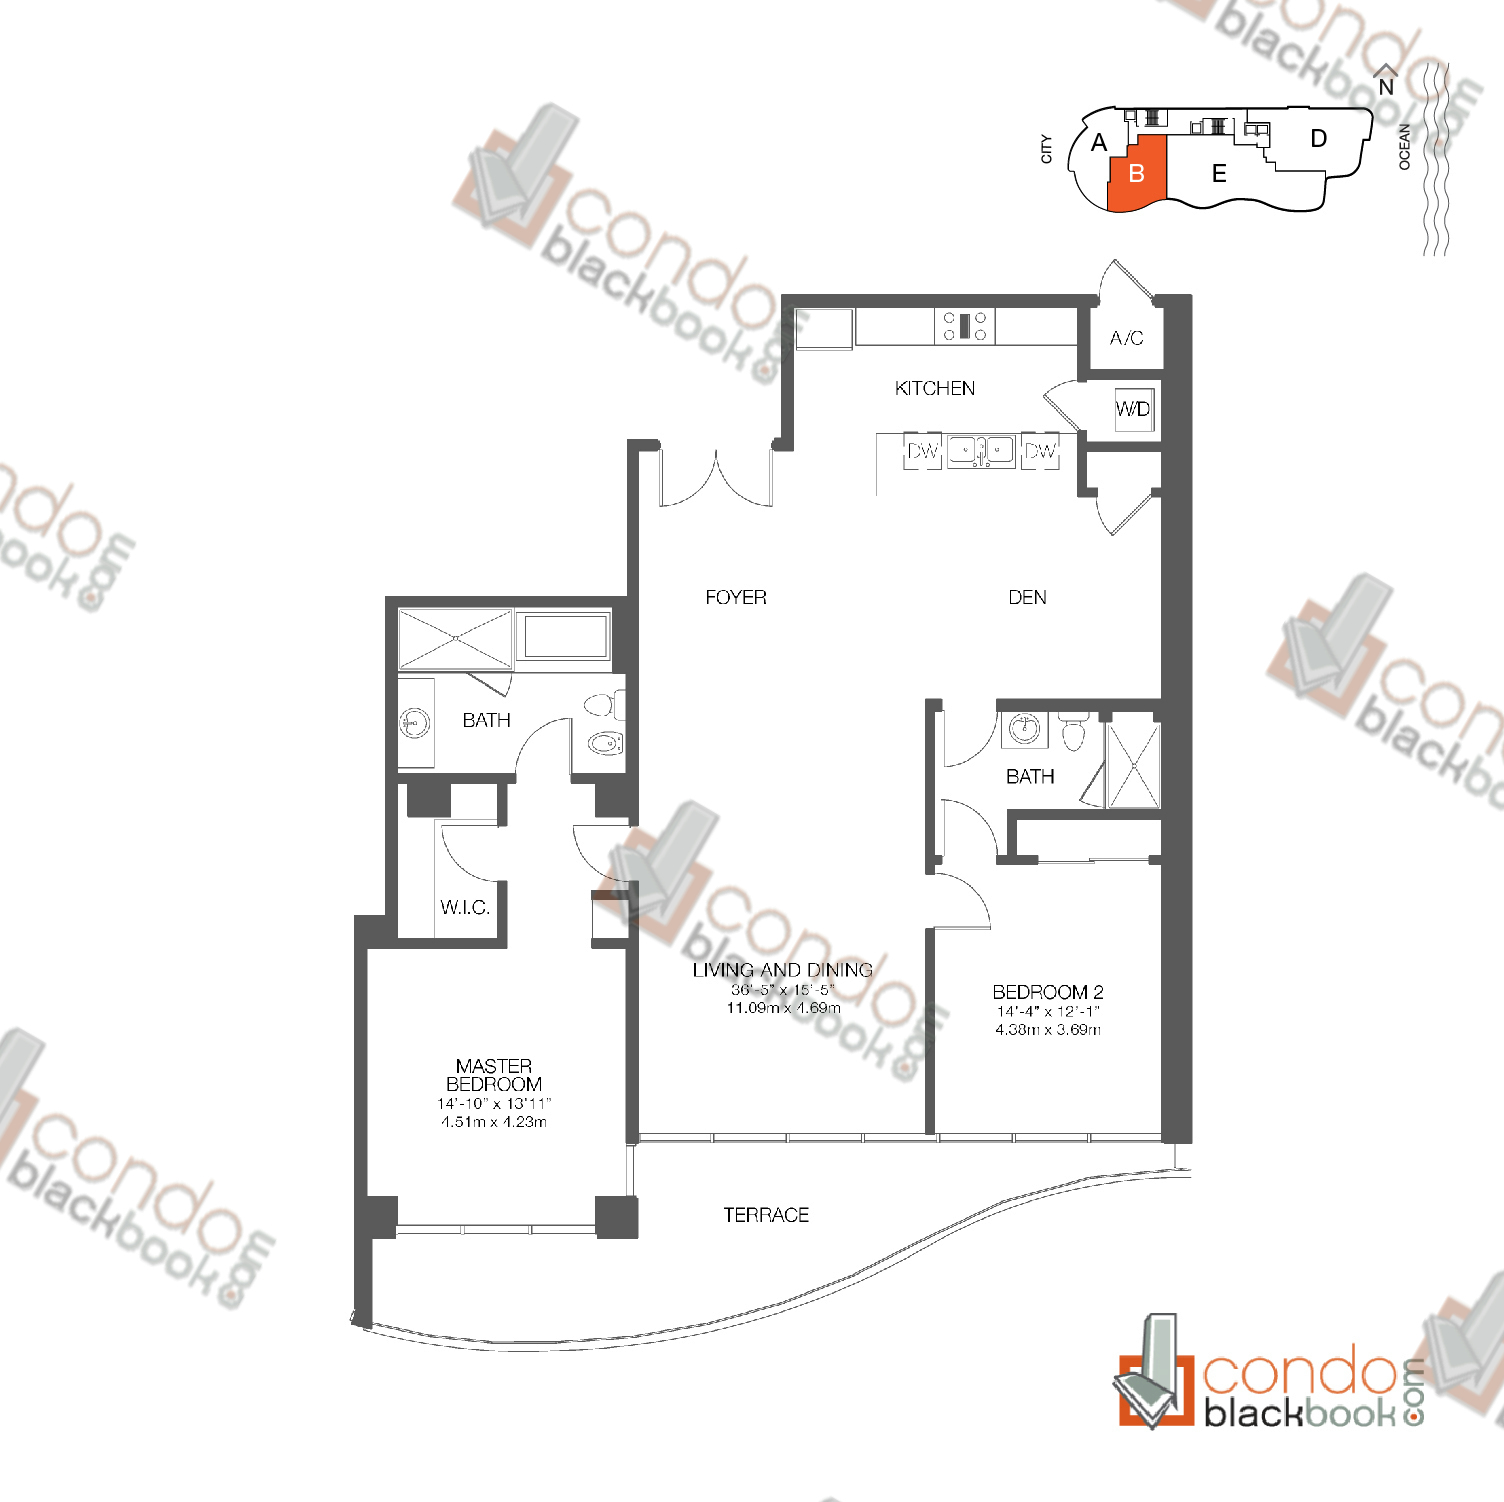 Floor plan for Chateau Beach Residences Sunny Isles Beach, model Residence B, line 02, 2/2 + Den bedrooms, 1,662 sq ft